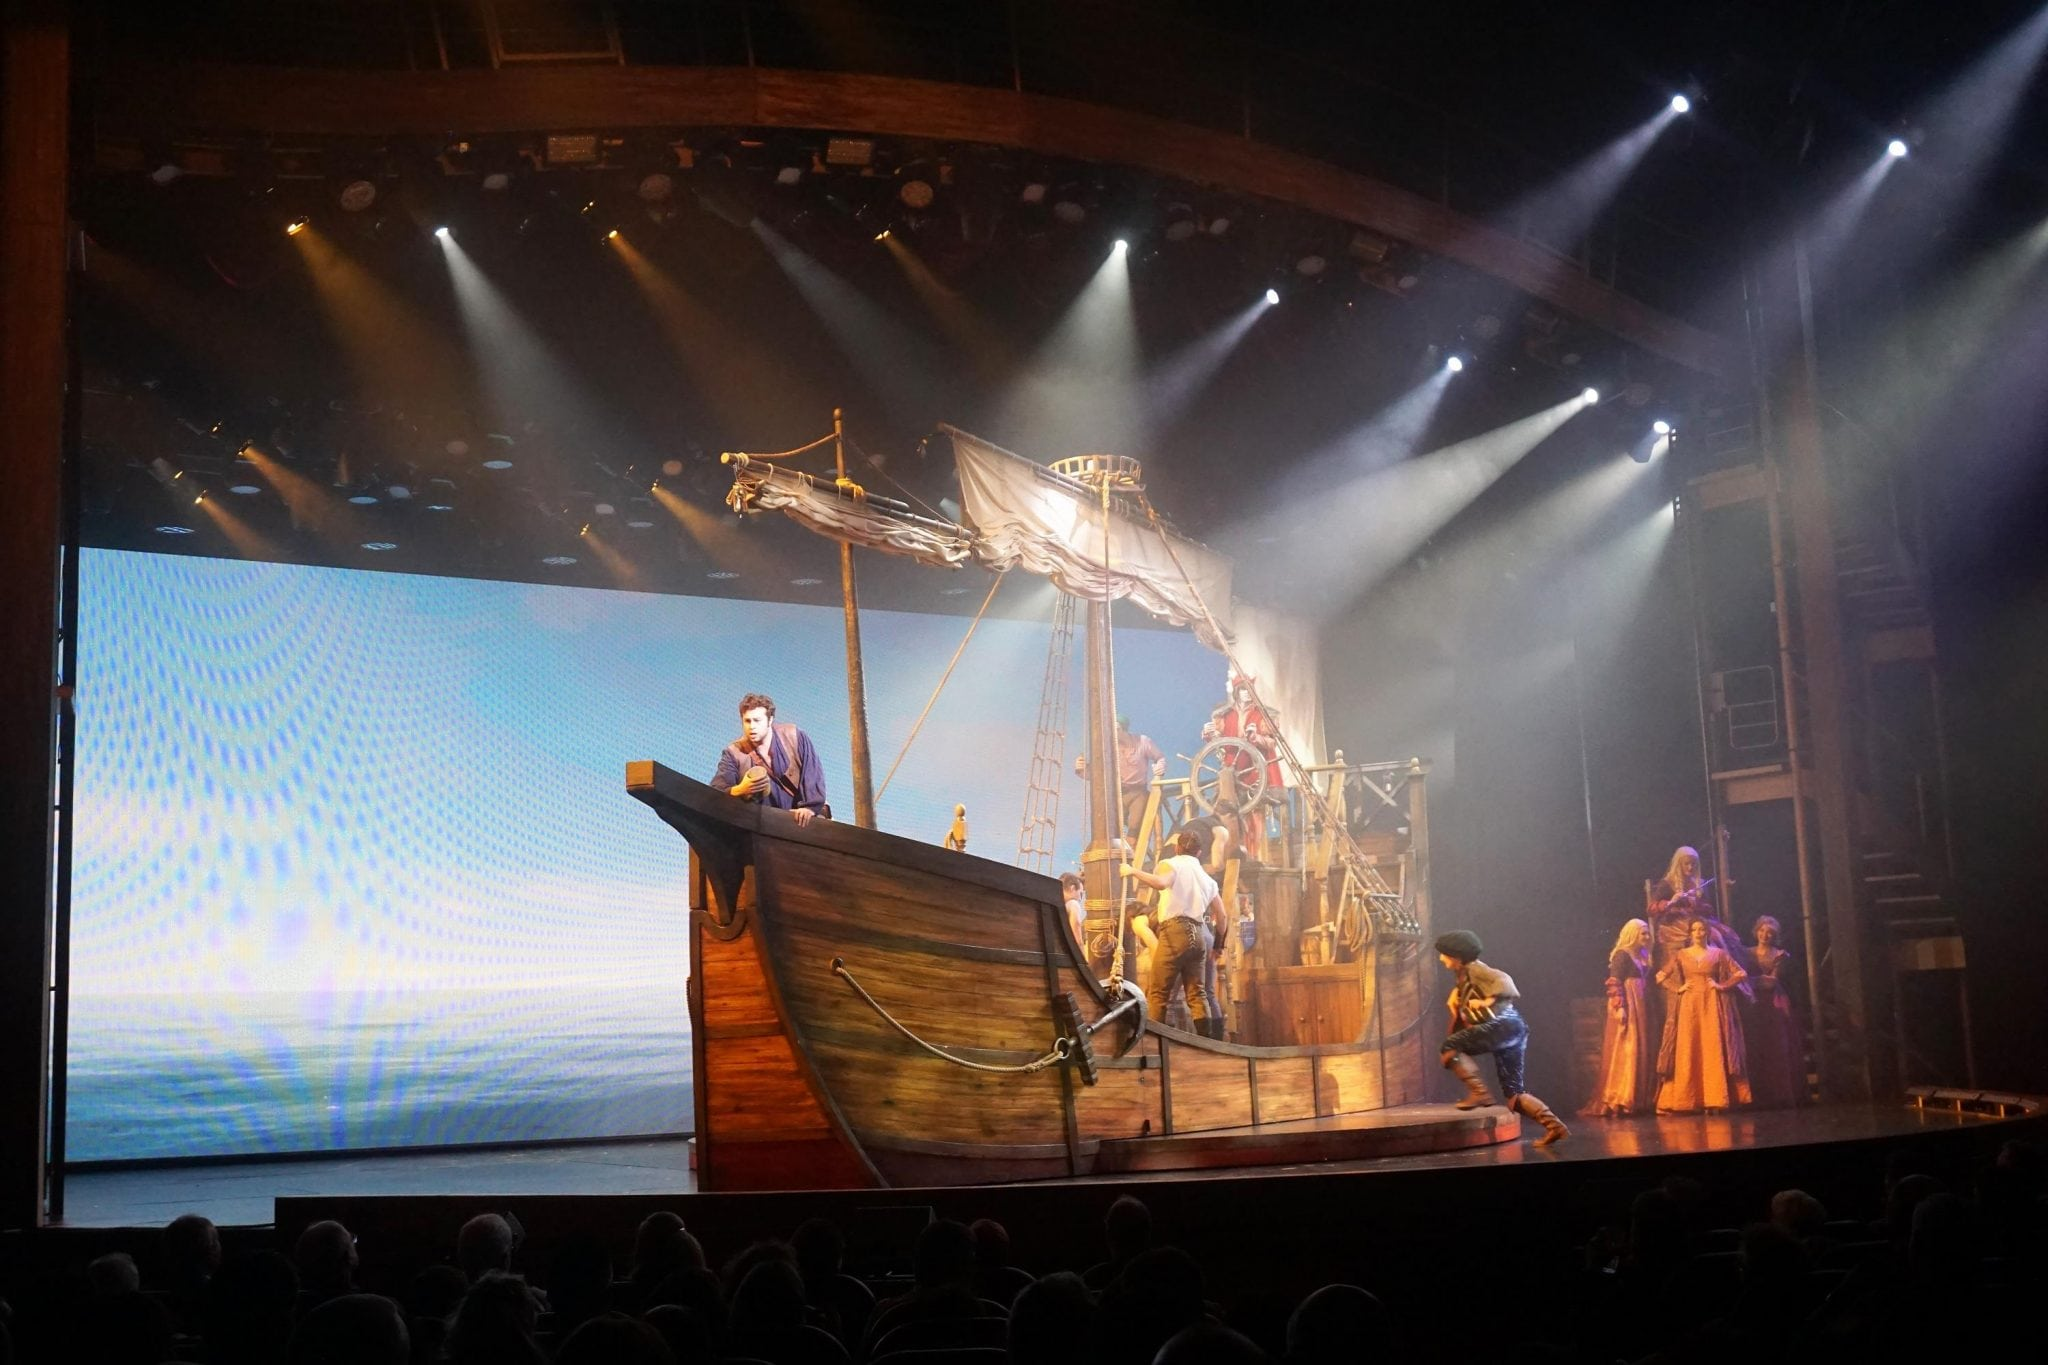 Columbus the Musical on Harmony of the Seas